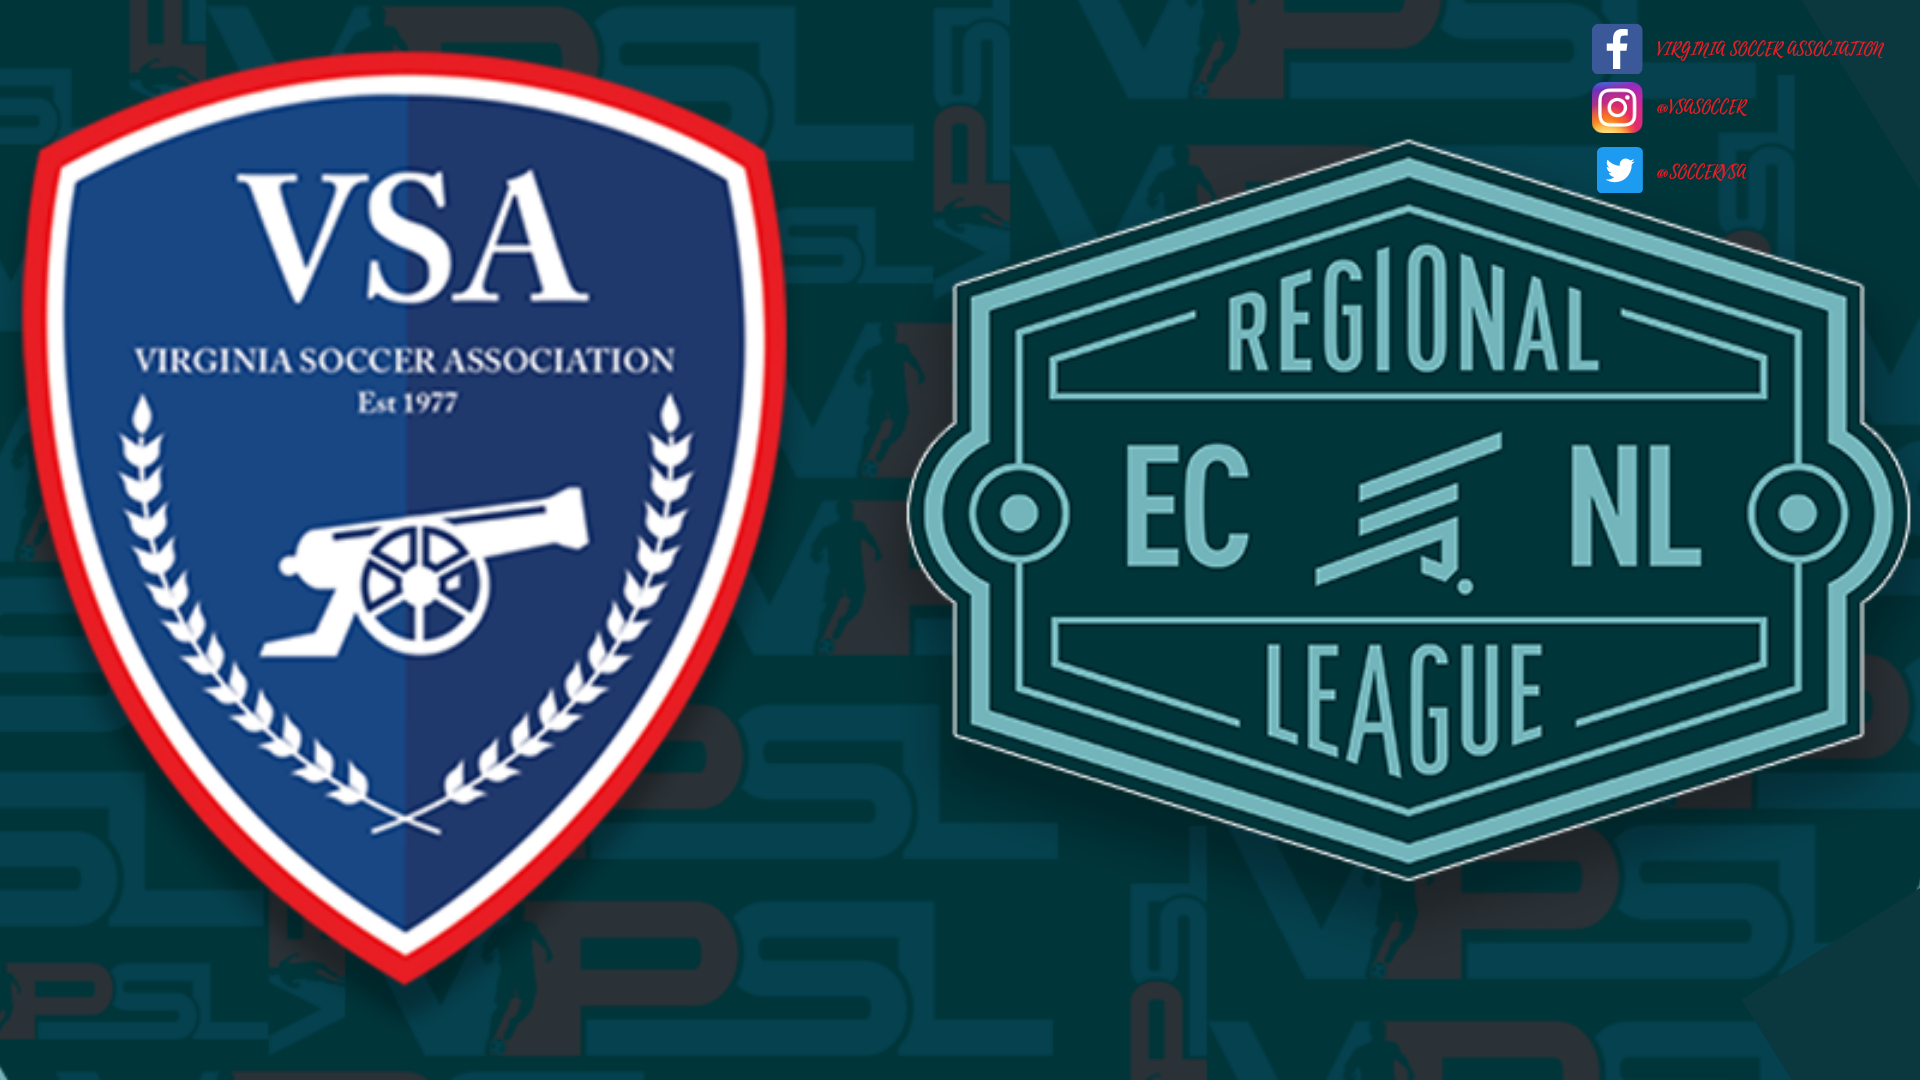 ECNL Boys Partners with VPSL for Regional League in 2021-22 Season